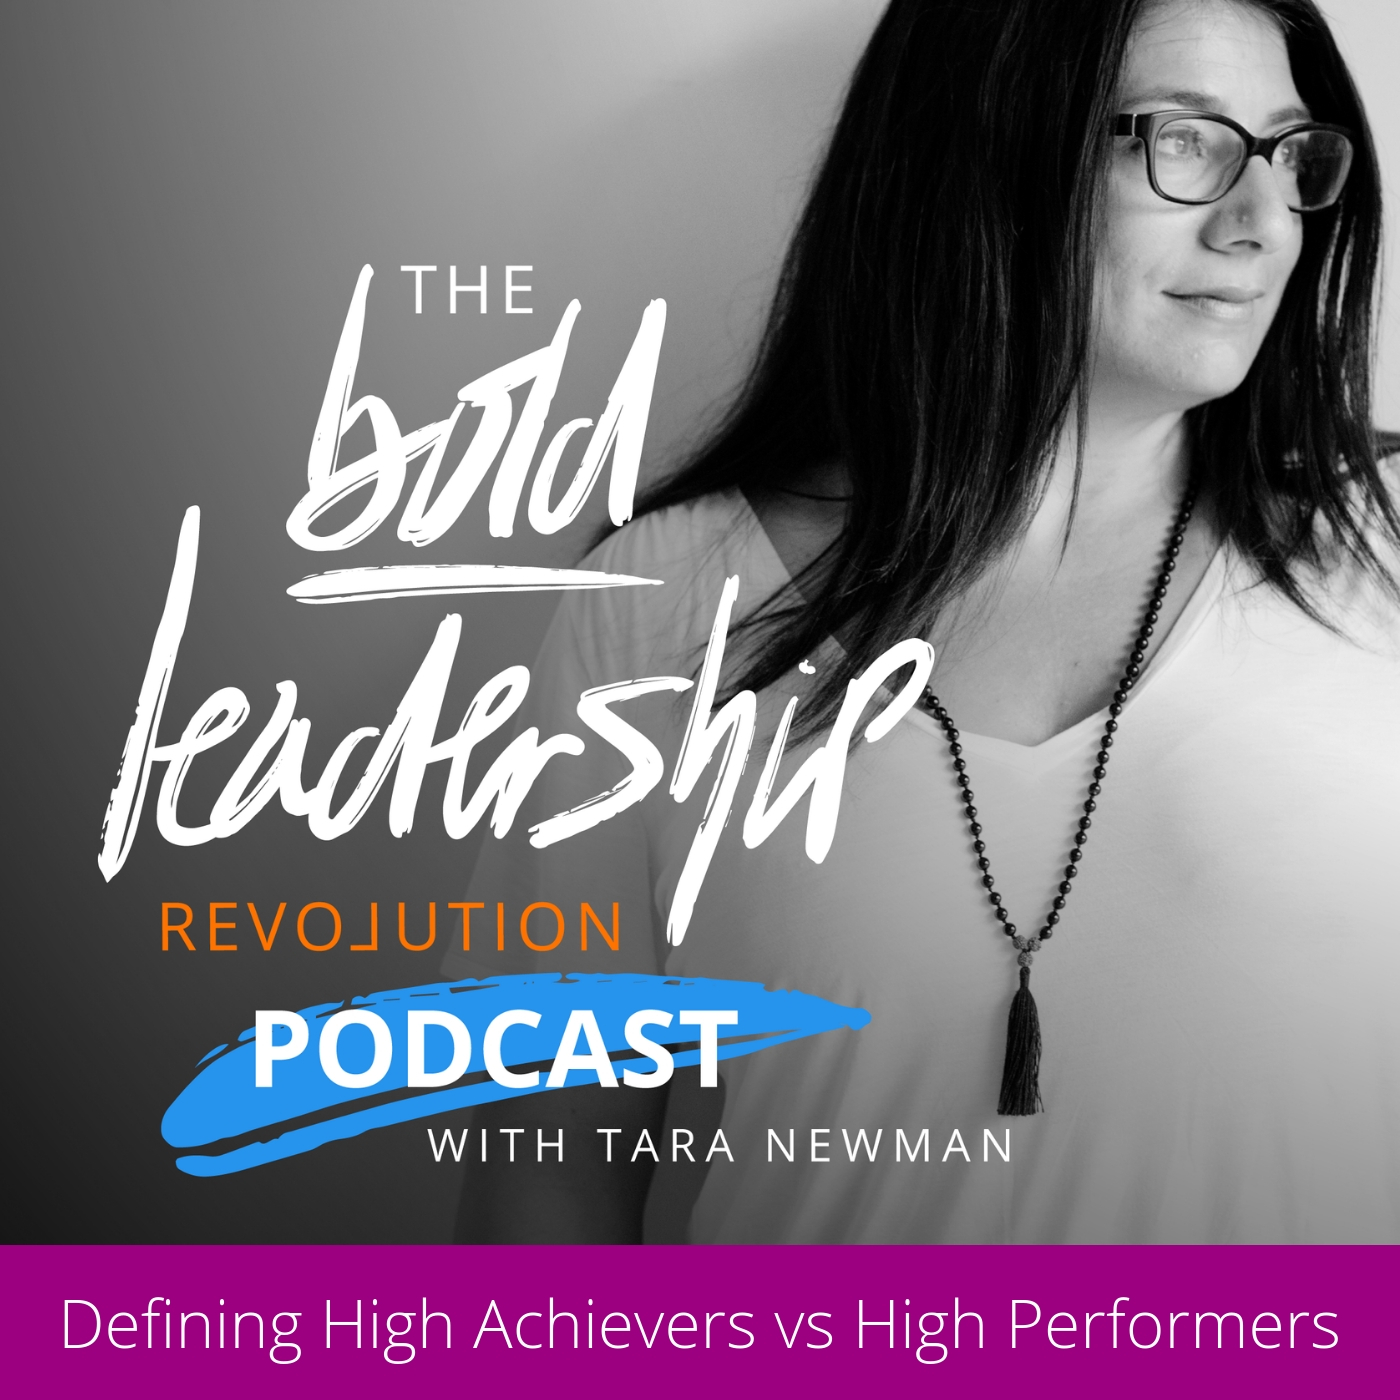 Defining High Achievers vs High Performers